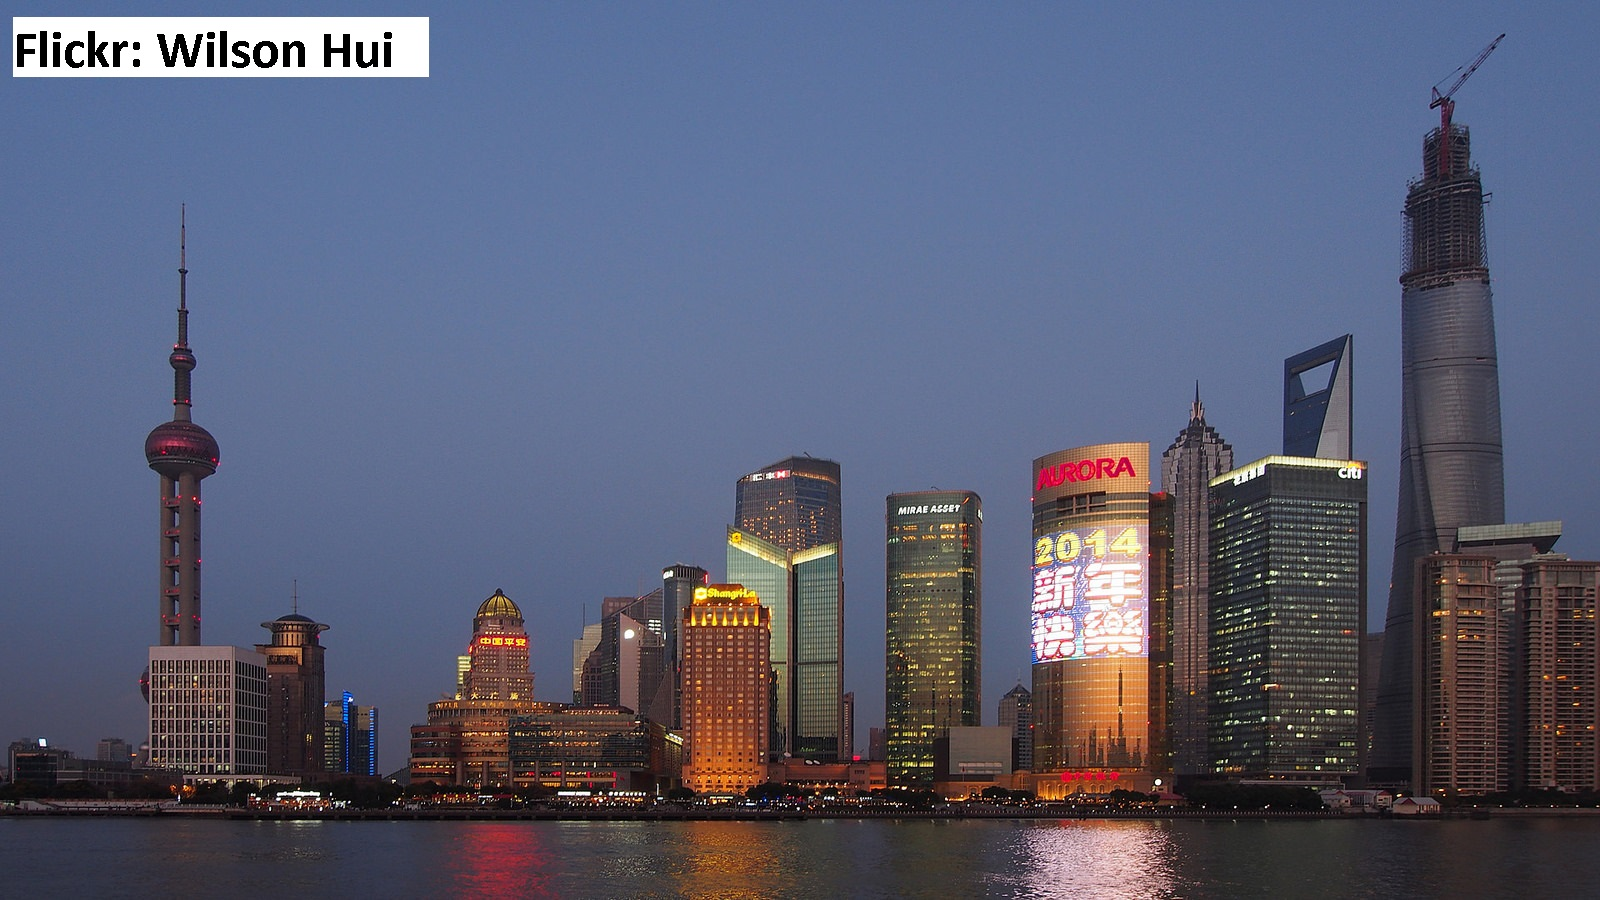 China's investment in ITS to amount billion dollars by 2020